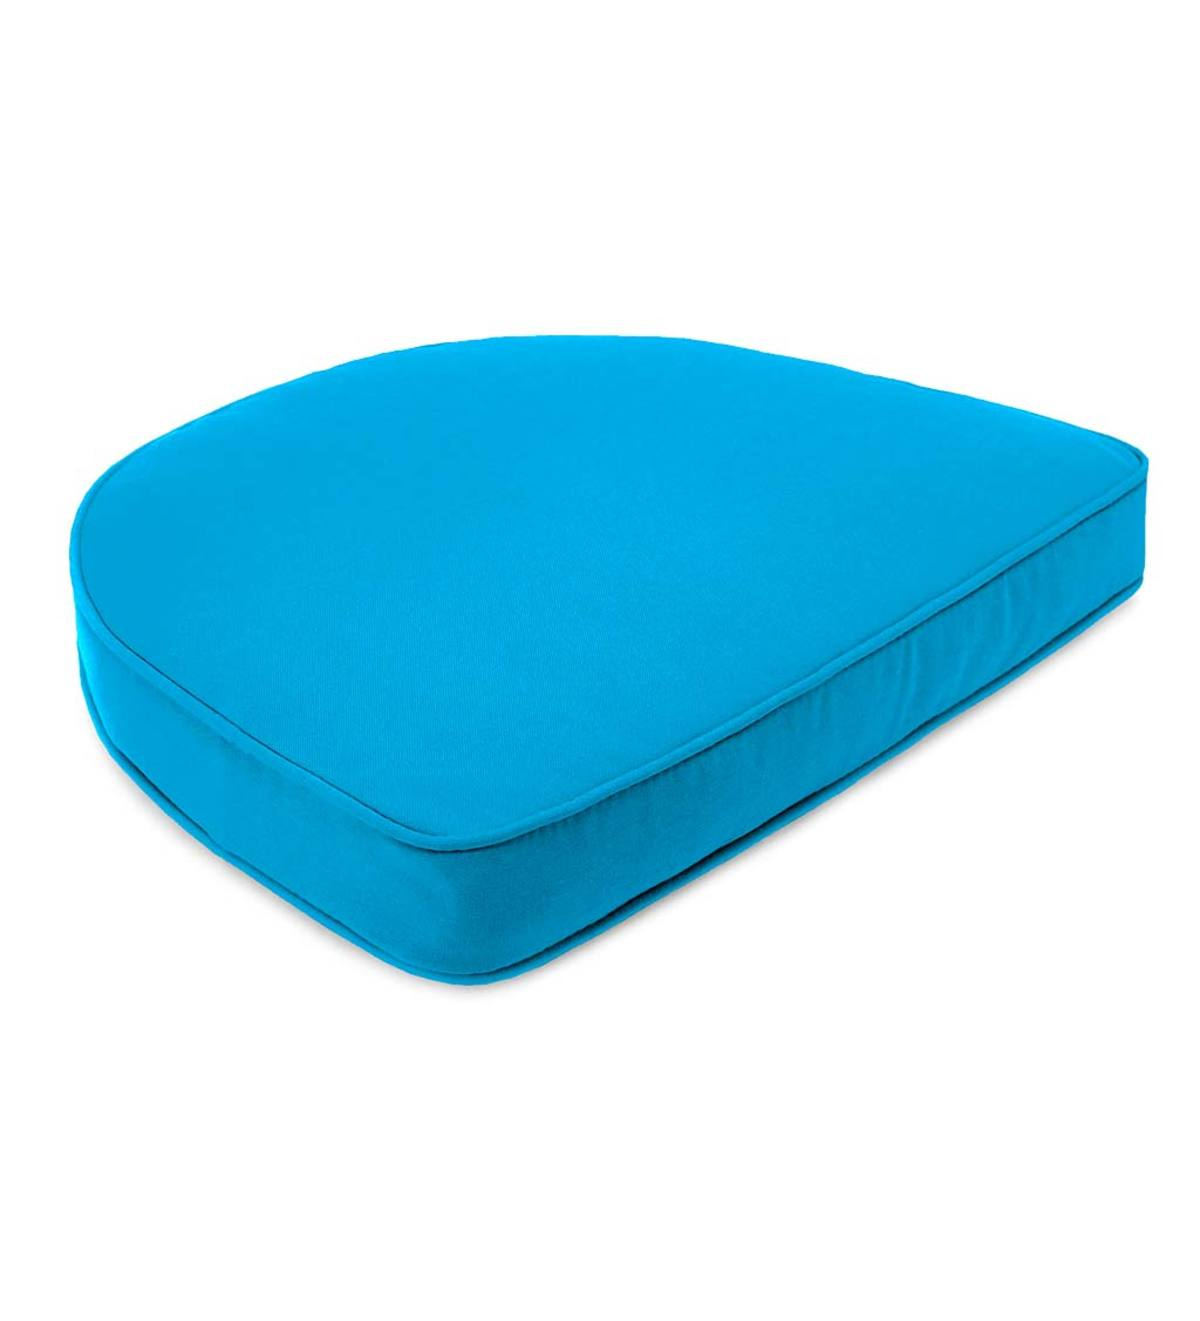 "Sunbrella Deluxe Chair Cushion With Rounded Back, 17½"" x 15½"" x 3"""